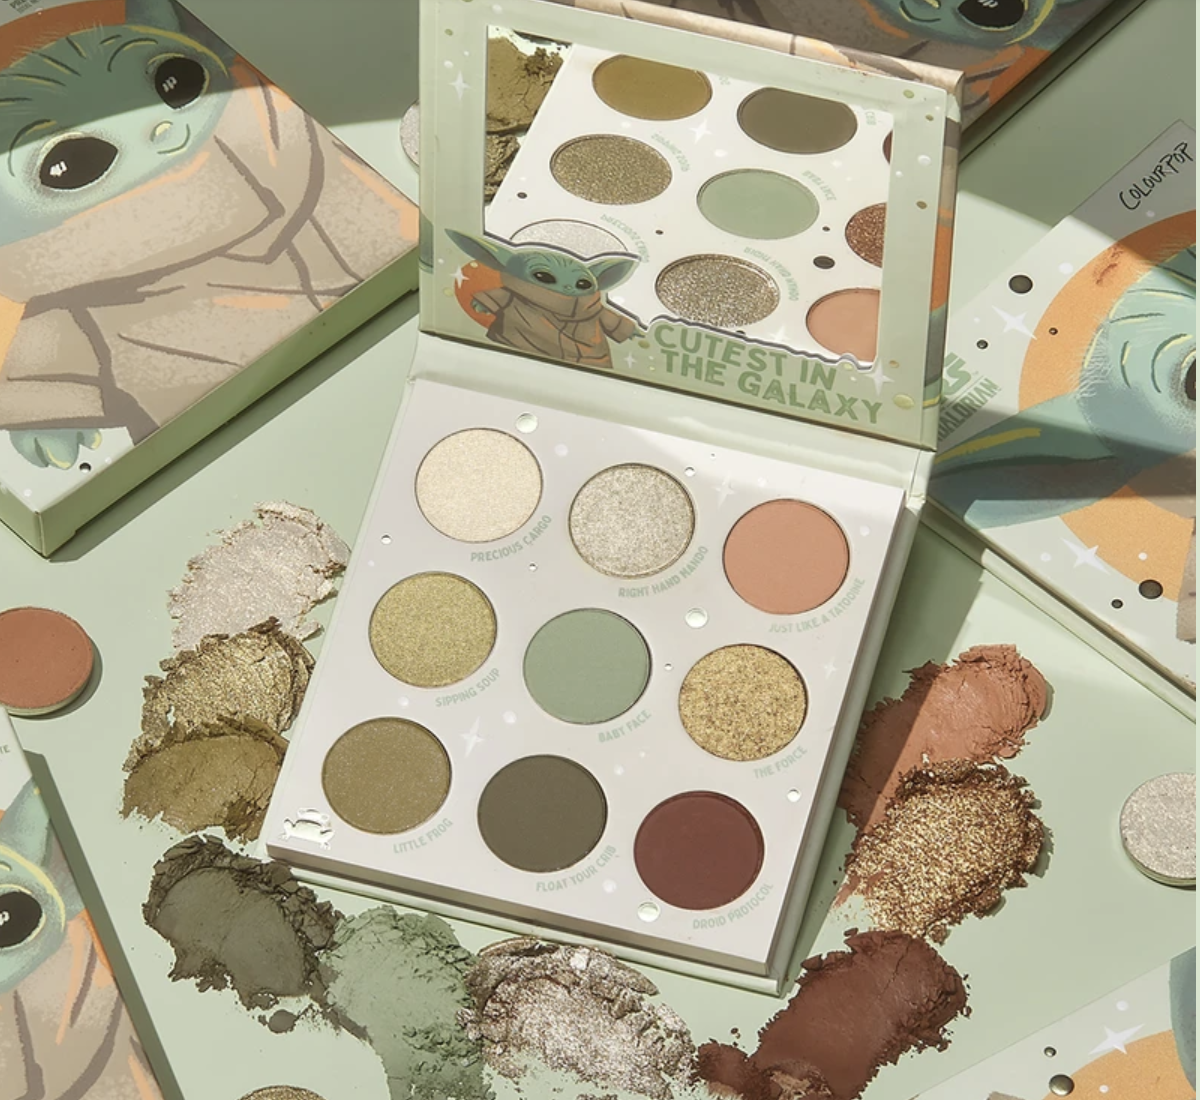 An eye pallette with shades of bronze, green, silver, ivory, and brown themed to Baby Yoda from The Mandalorian